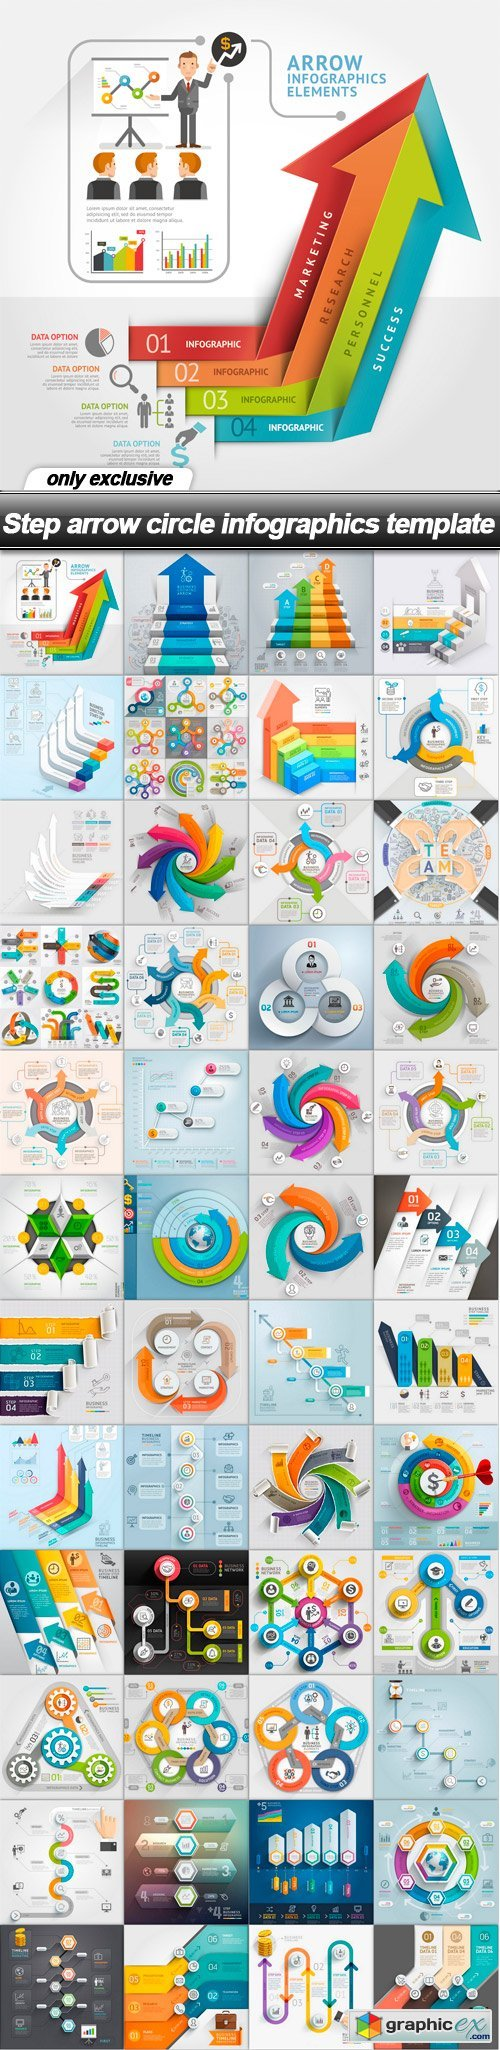 Step arrow circle infographics template - 48 EPS